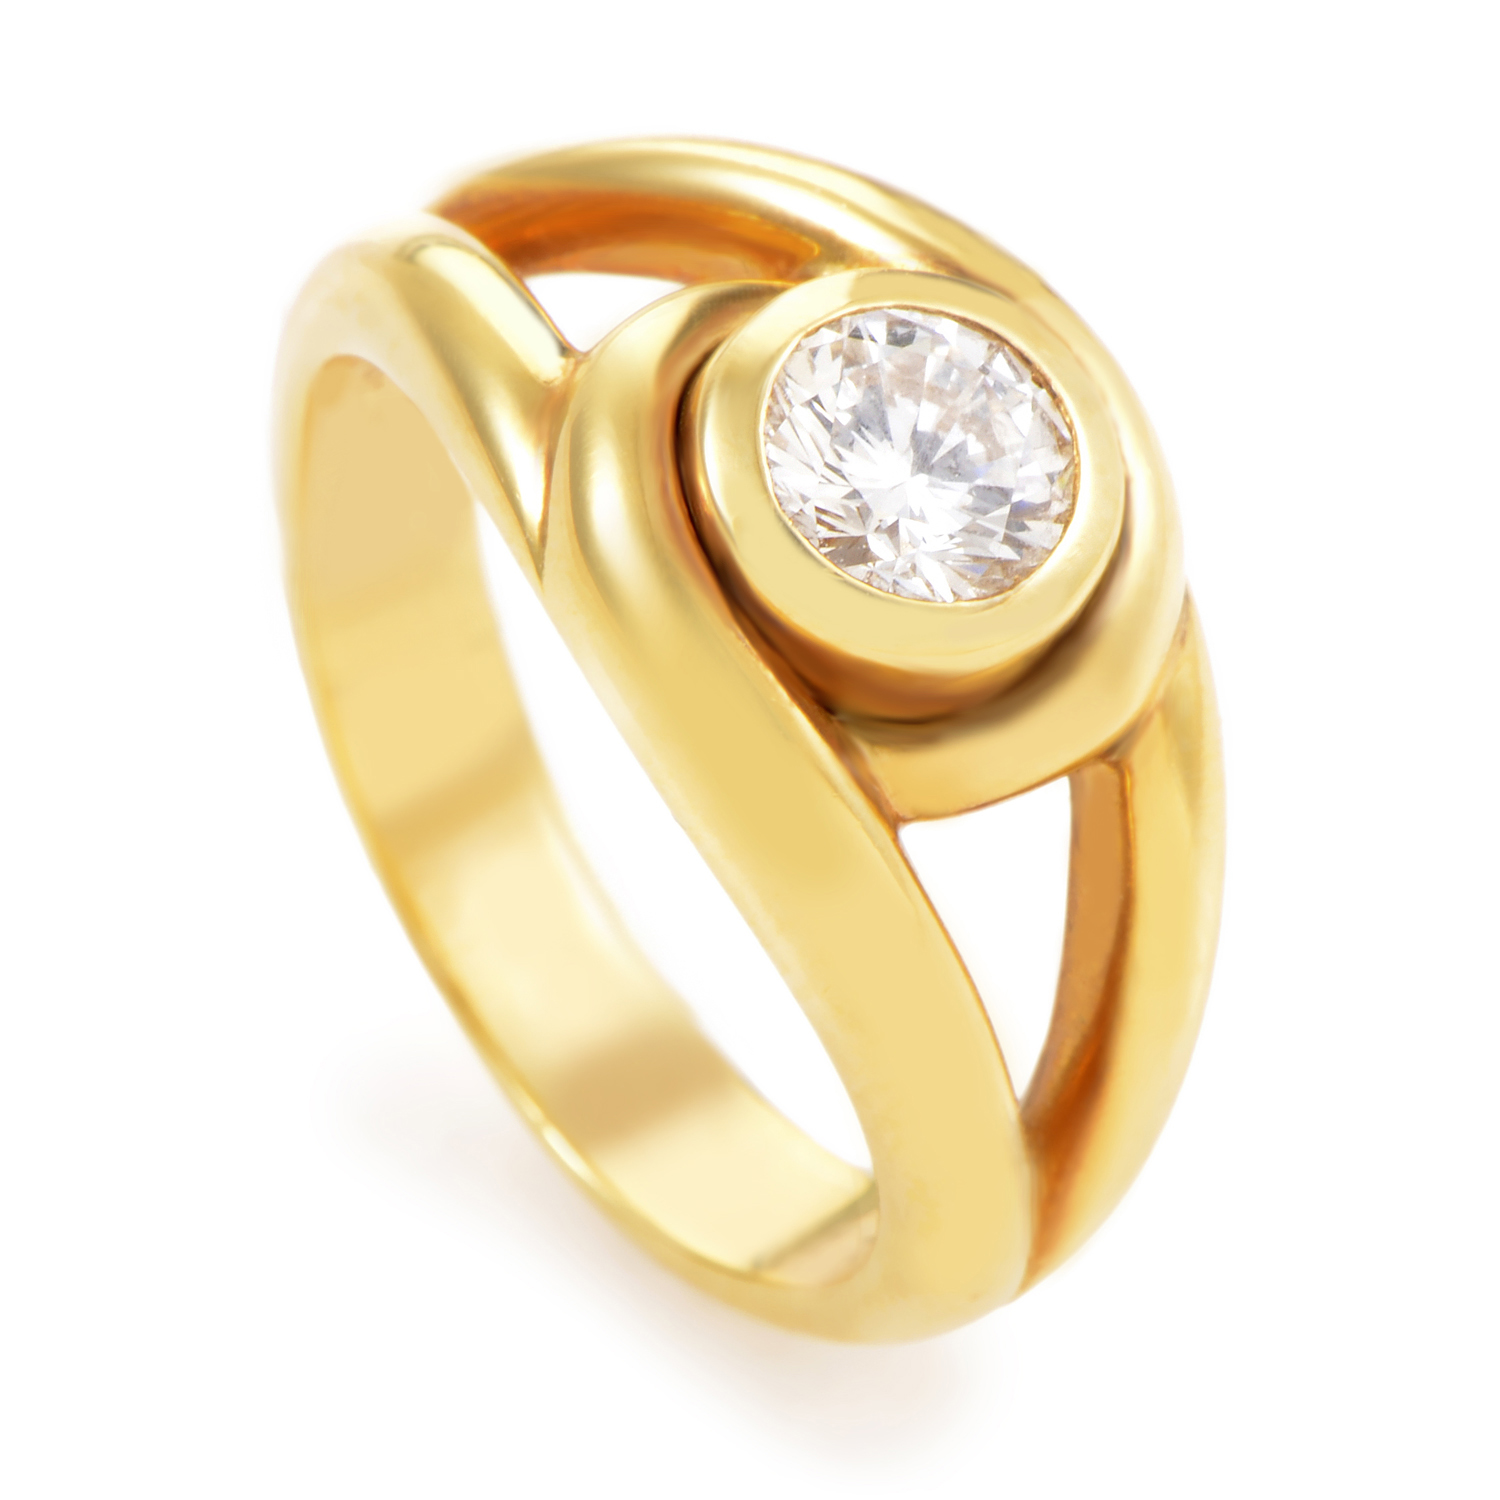 Cartier 18K Yellow Gold Diamond Solitaire Engagement Ring